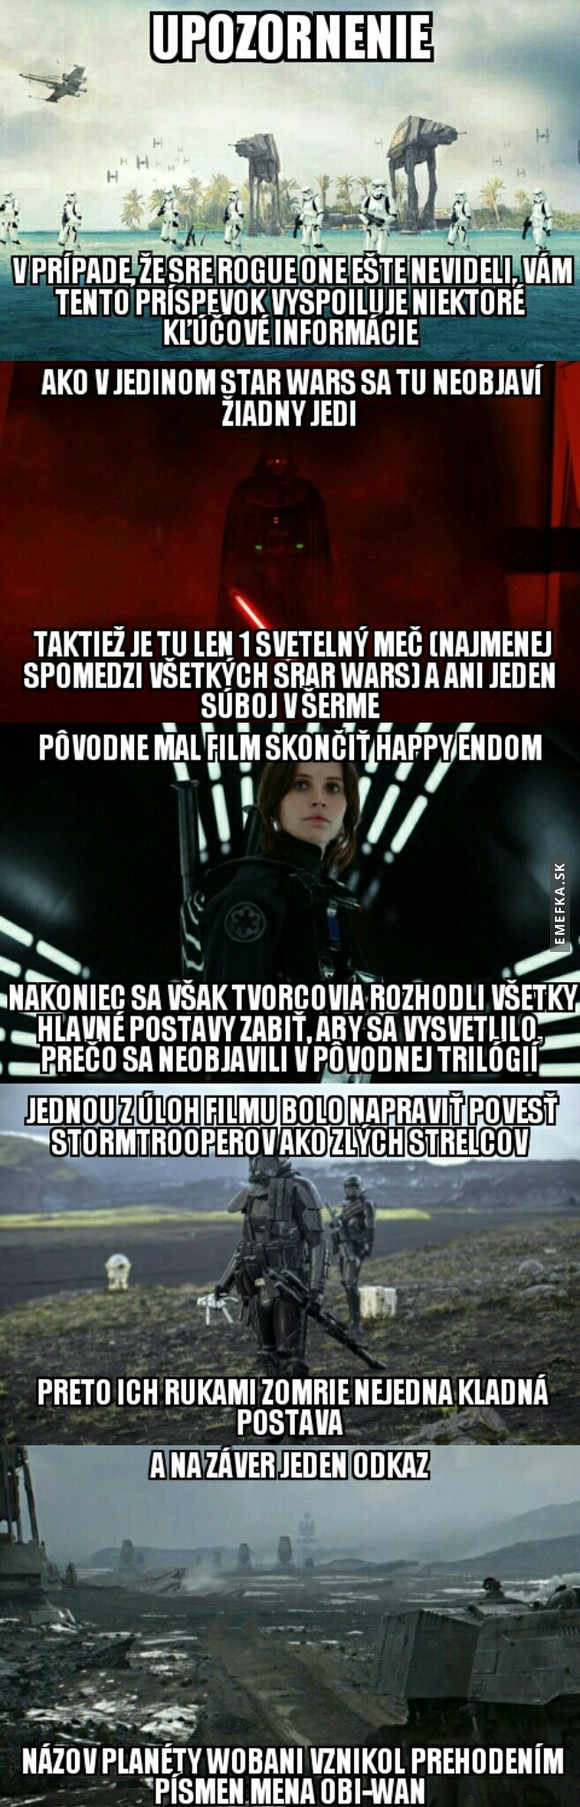 Star Wars fakty no.9 Rogue one